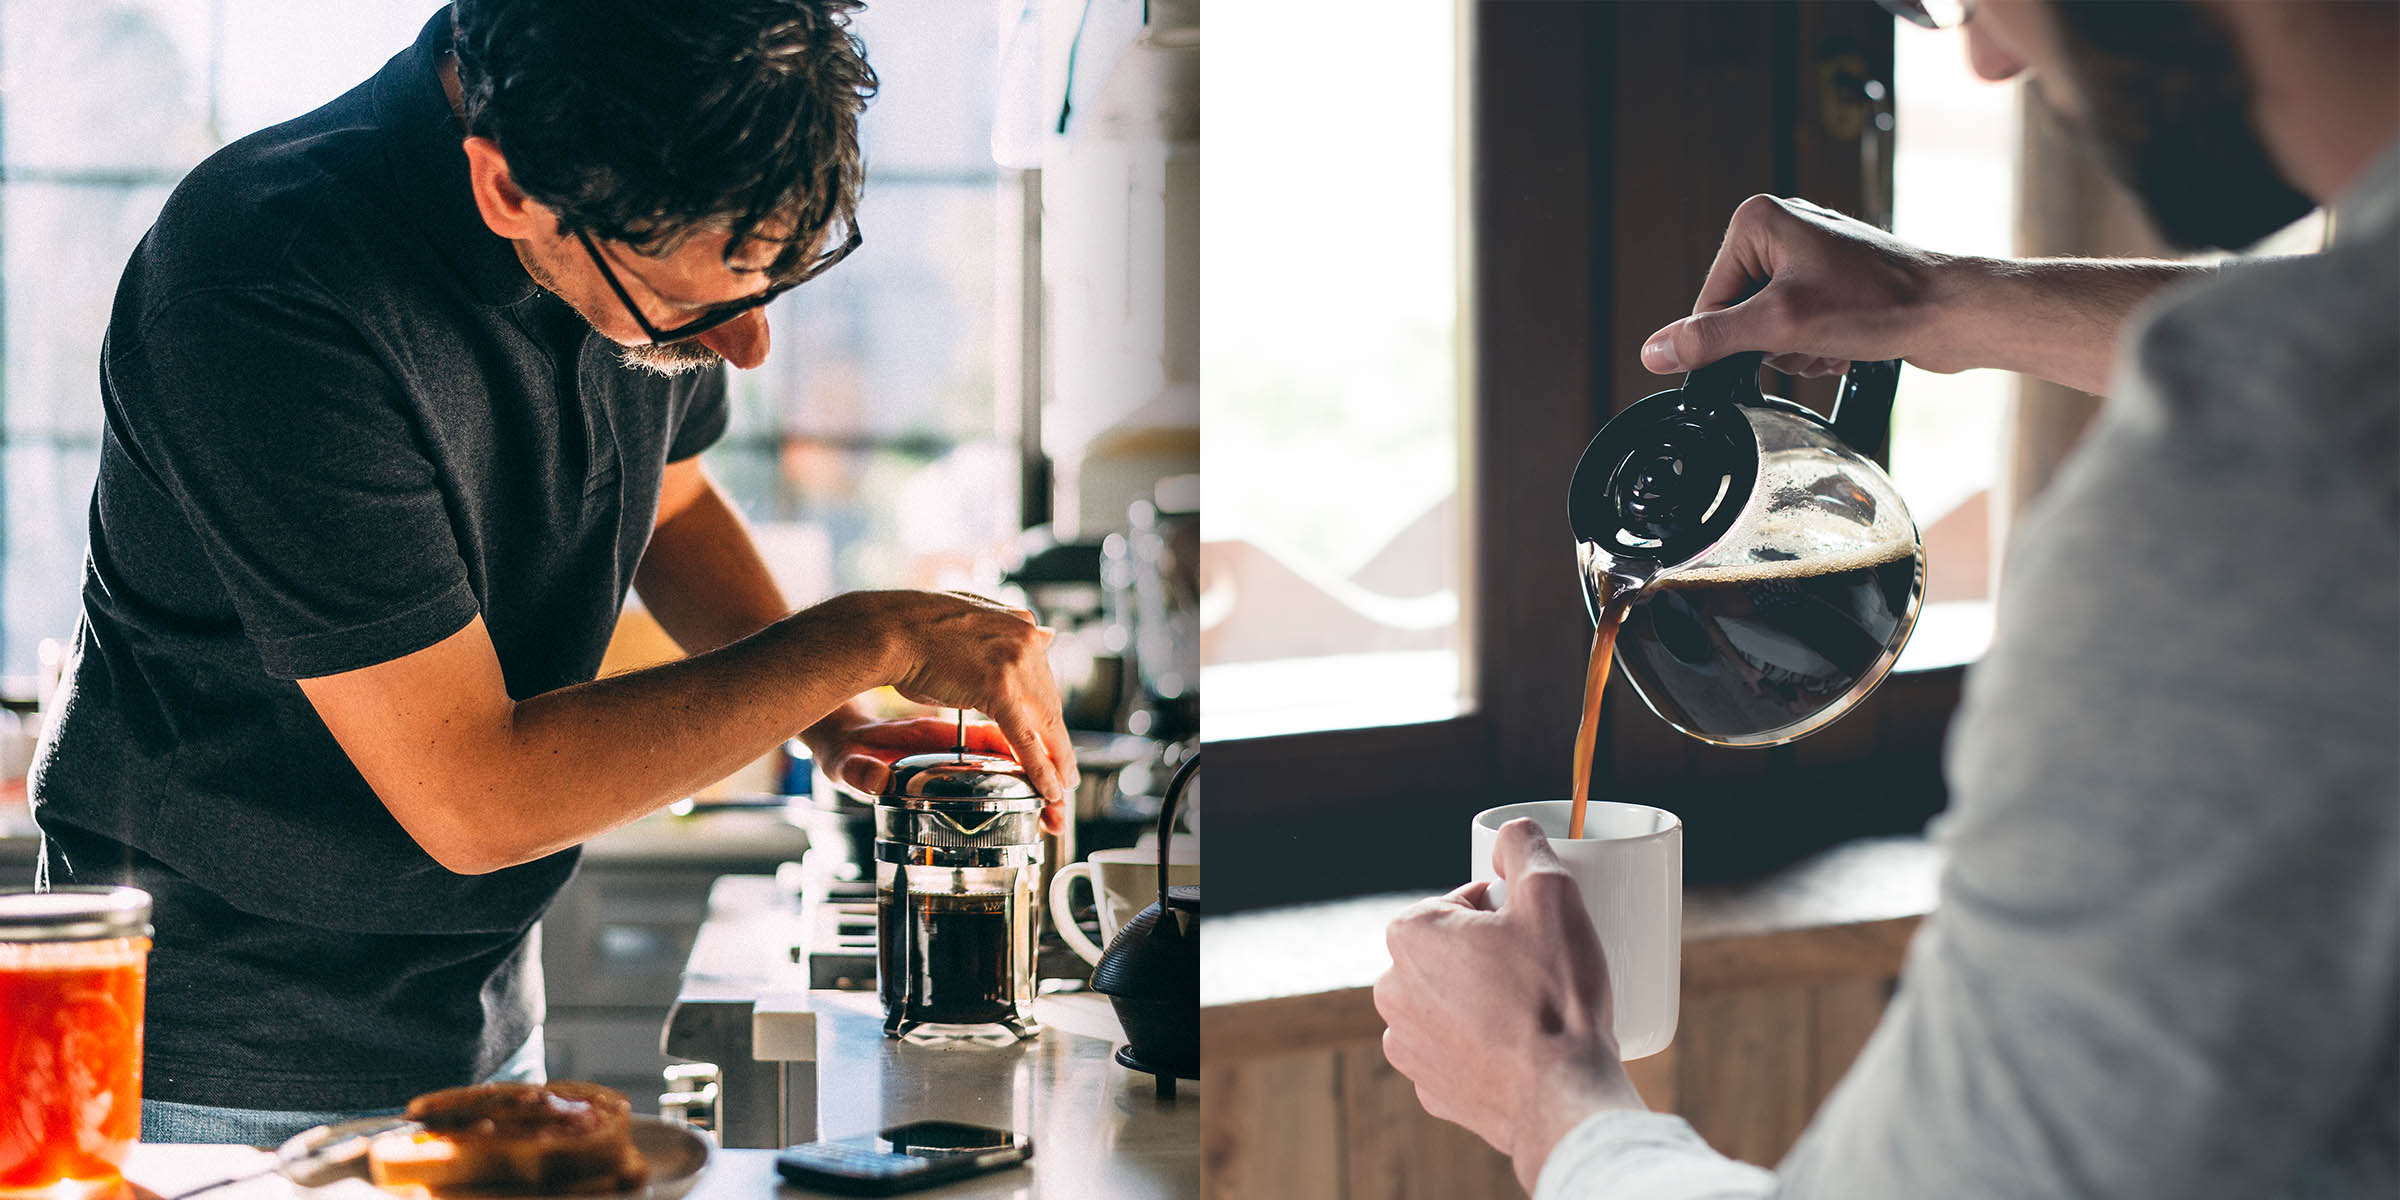 The healthiest way to brew coffee, according to a new study